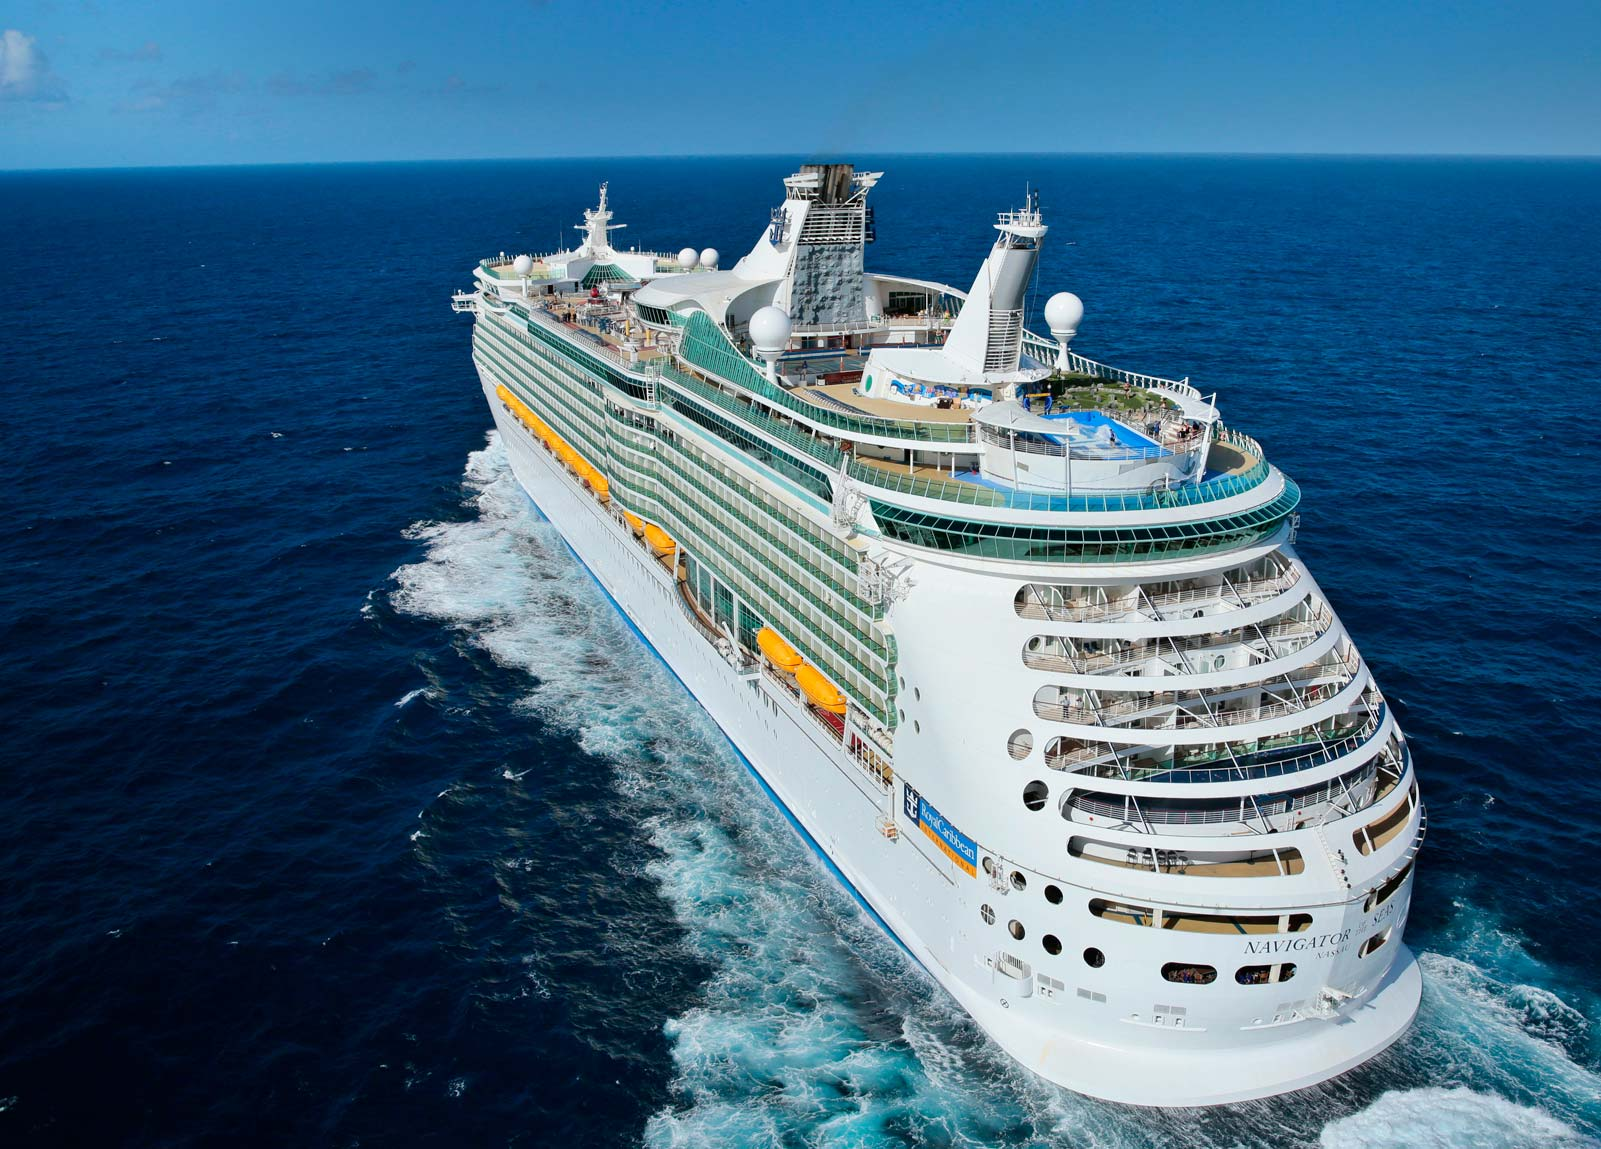 Royal Caribbean Cruises from Galveston, Galveston Last Minute Cruise Deals